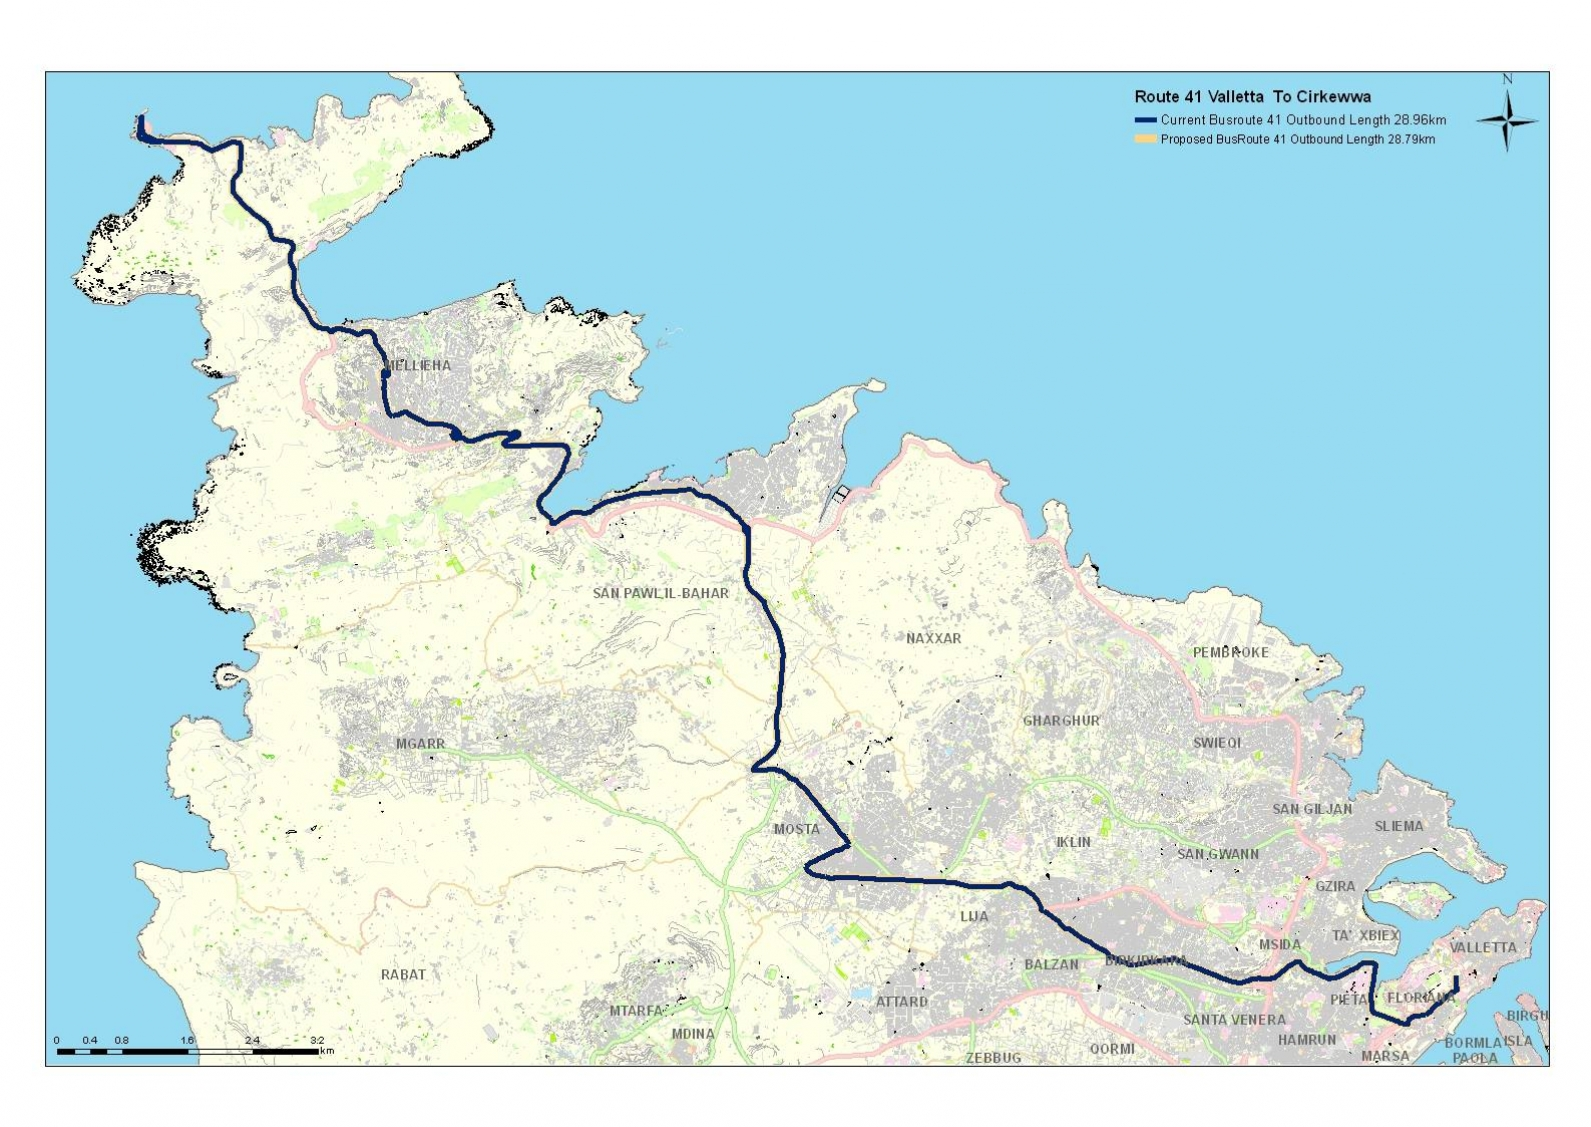 Land-current-network-routes-and-schedules-Cirkewwa-mellieha-sliema-2